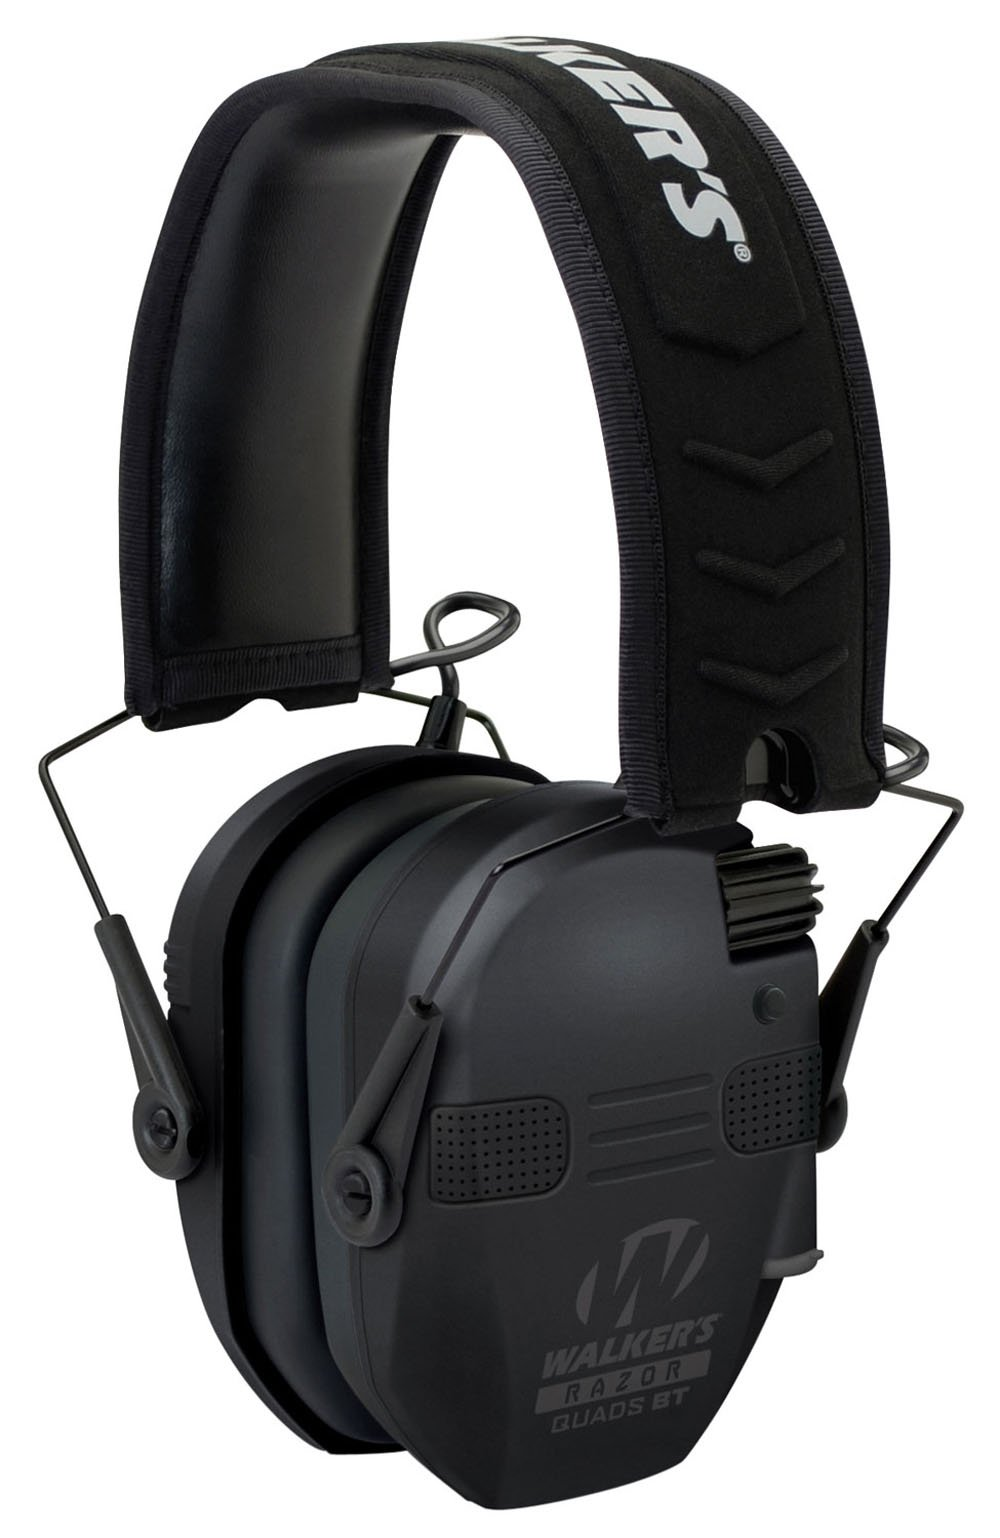 Game Ear Ultimate Series Power Muff Quads Black Earmuff (27dB) by Razor